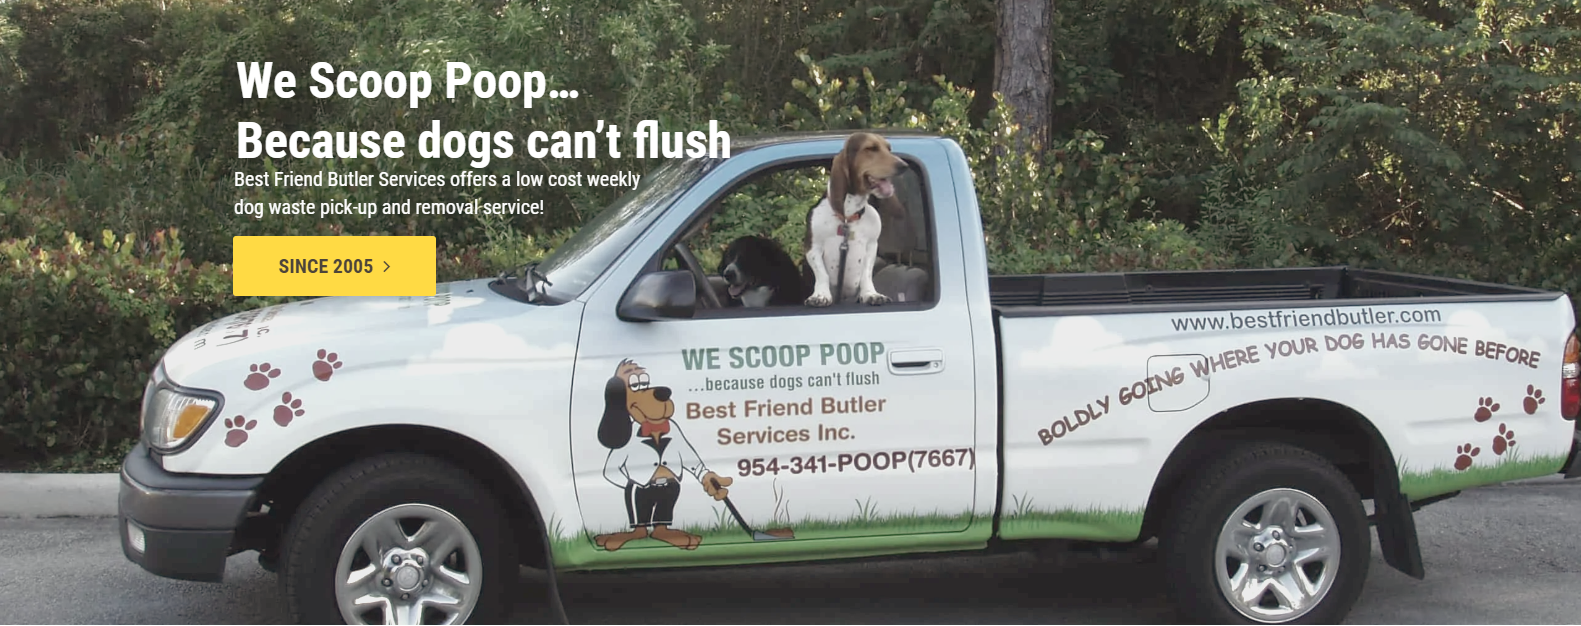 Best Friend Butler Services Provides Low-cost Dog Waste Disposal Services